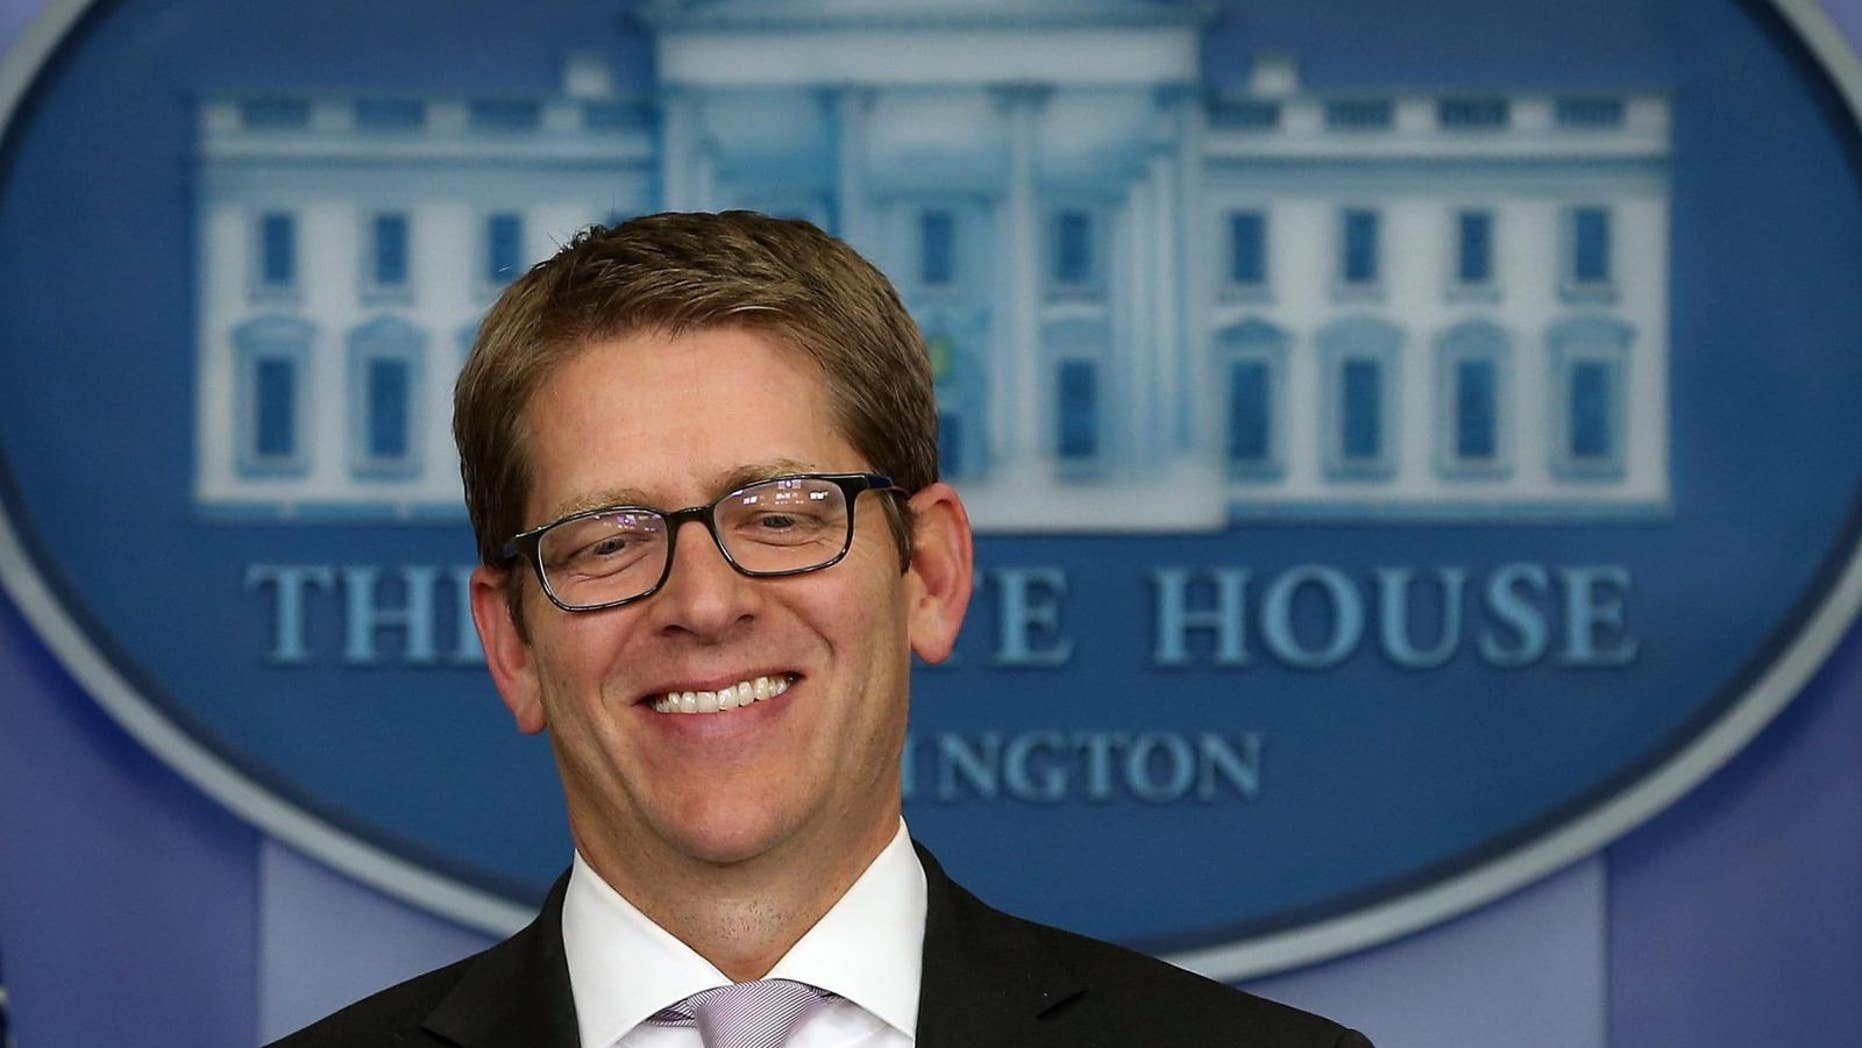 WASHINGTON, DC - OCTOBER 16: White House Press Secretary Jay Carney speaks during his daily briefing at the White House, October 16, 2013 in Washington, DC. The Senate announced that it had reached a bipartisan deal on funding the federal government and the extending the nation's debt limit after 16 days of a government shutdown. (Photo by Mark Wilson/Getty Images)